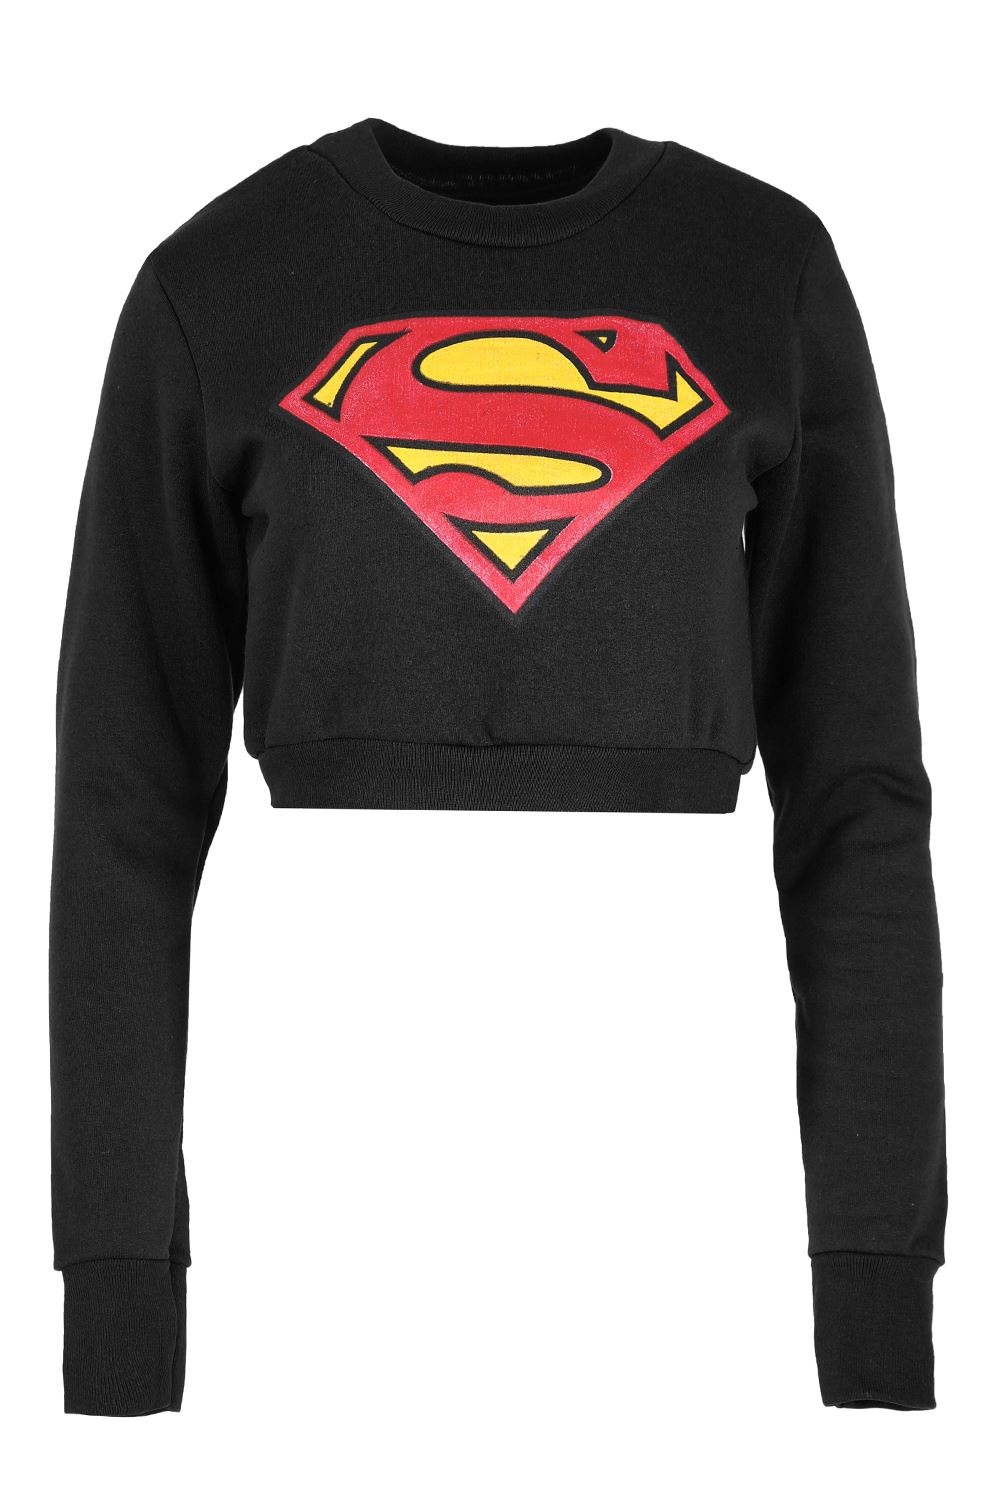 womens superman batman cropped tops ladies fleece